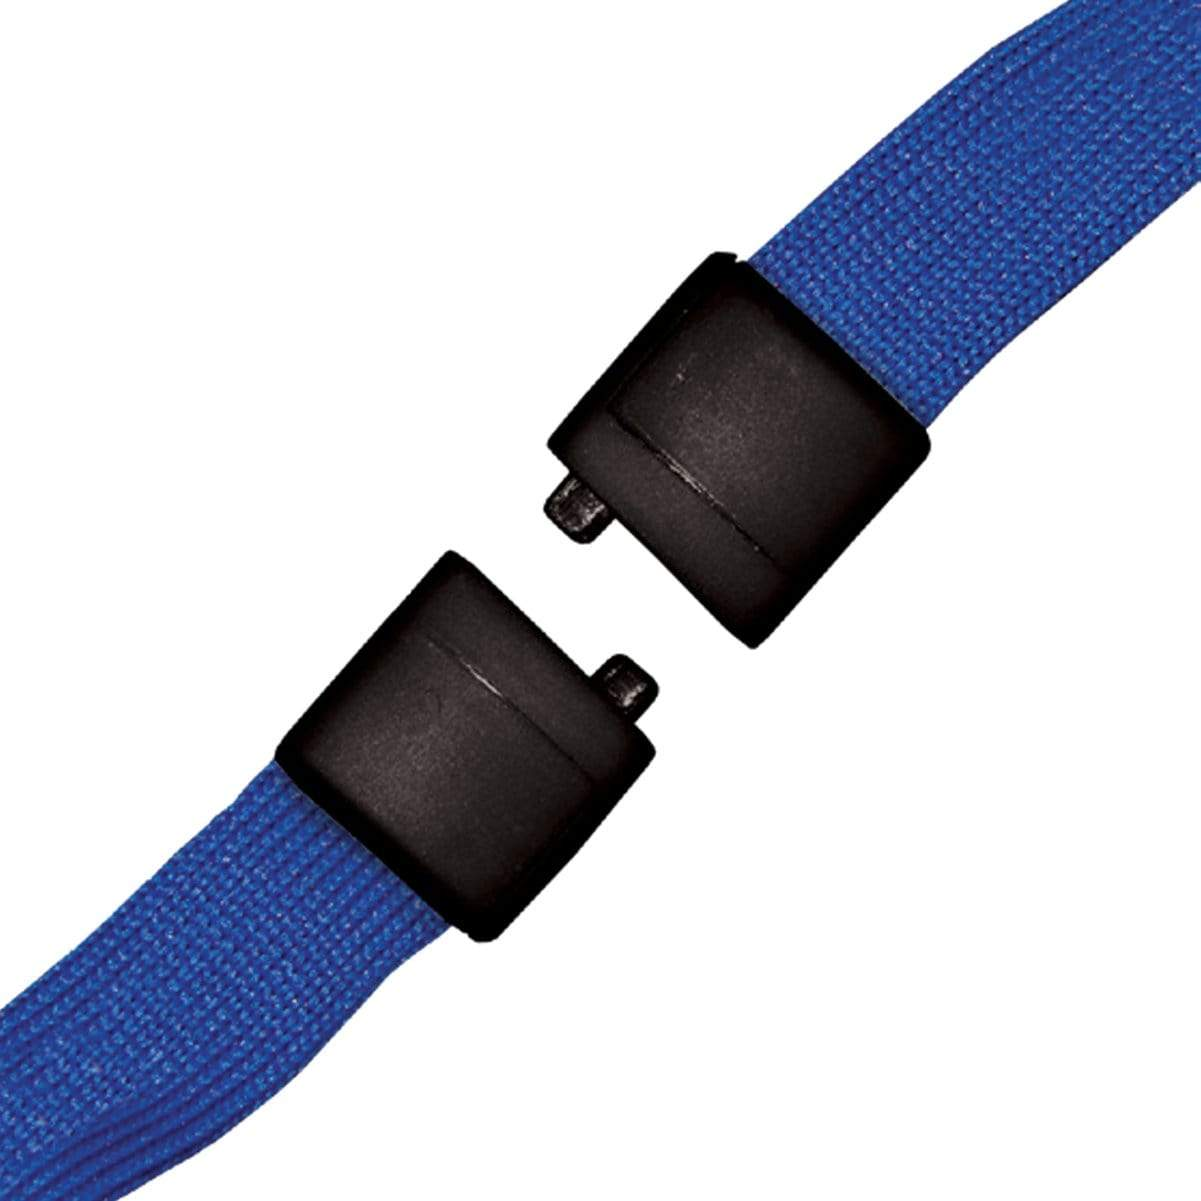 Breakaway Face Mask Lanyards - Adjustable Straps, Double Clip Face Mask Holders